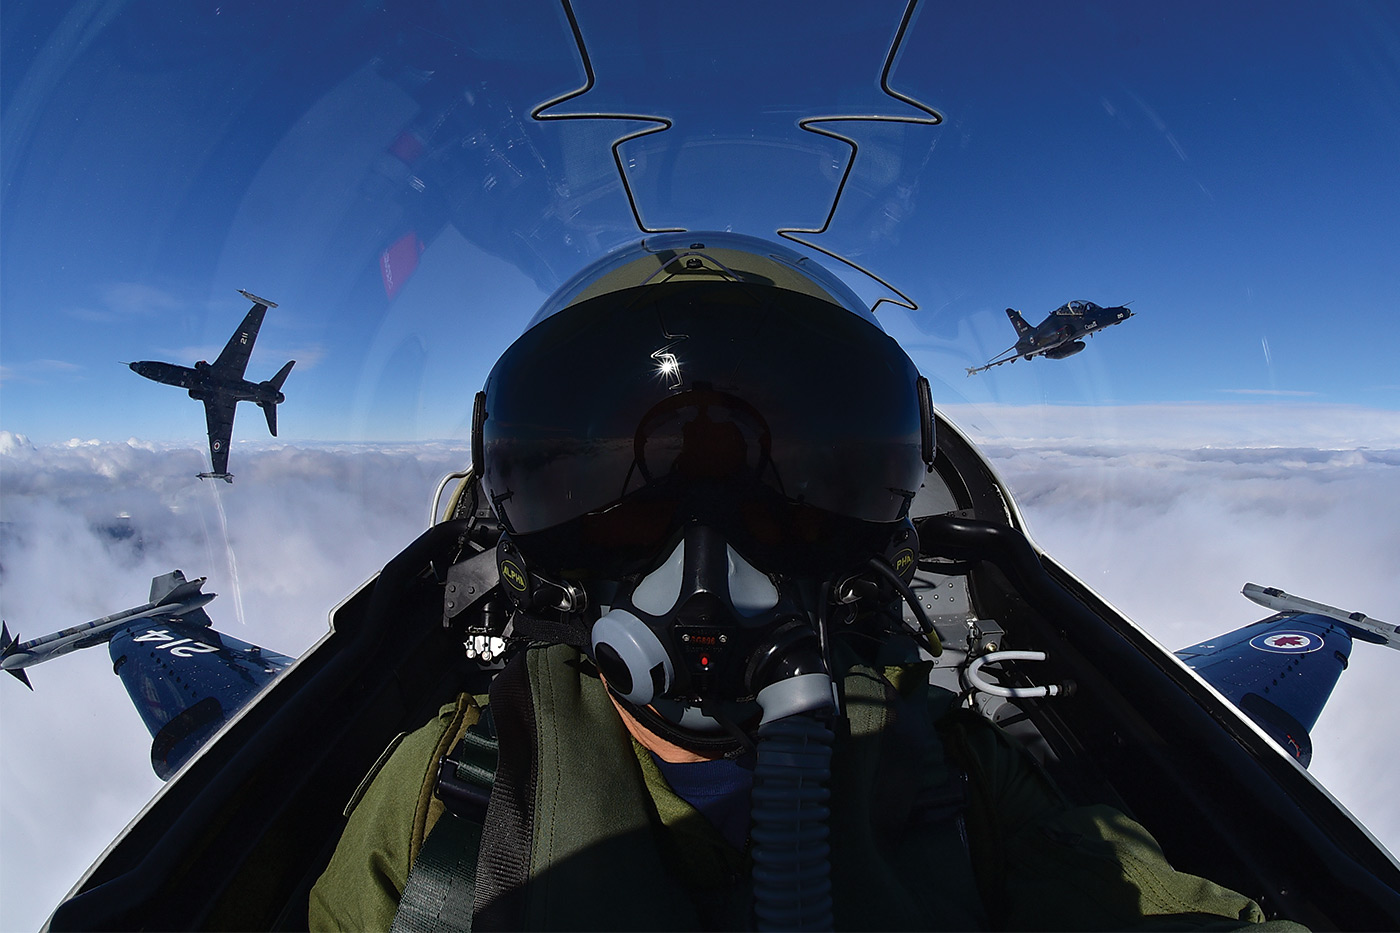 No photo flight is complete without the ultimate selfie. In this case it is in the cockpit of a CT-155 Hawk.